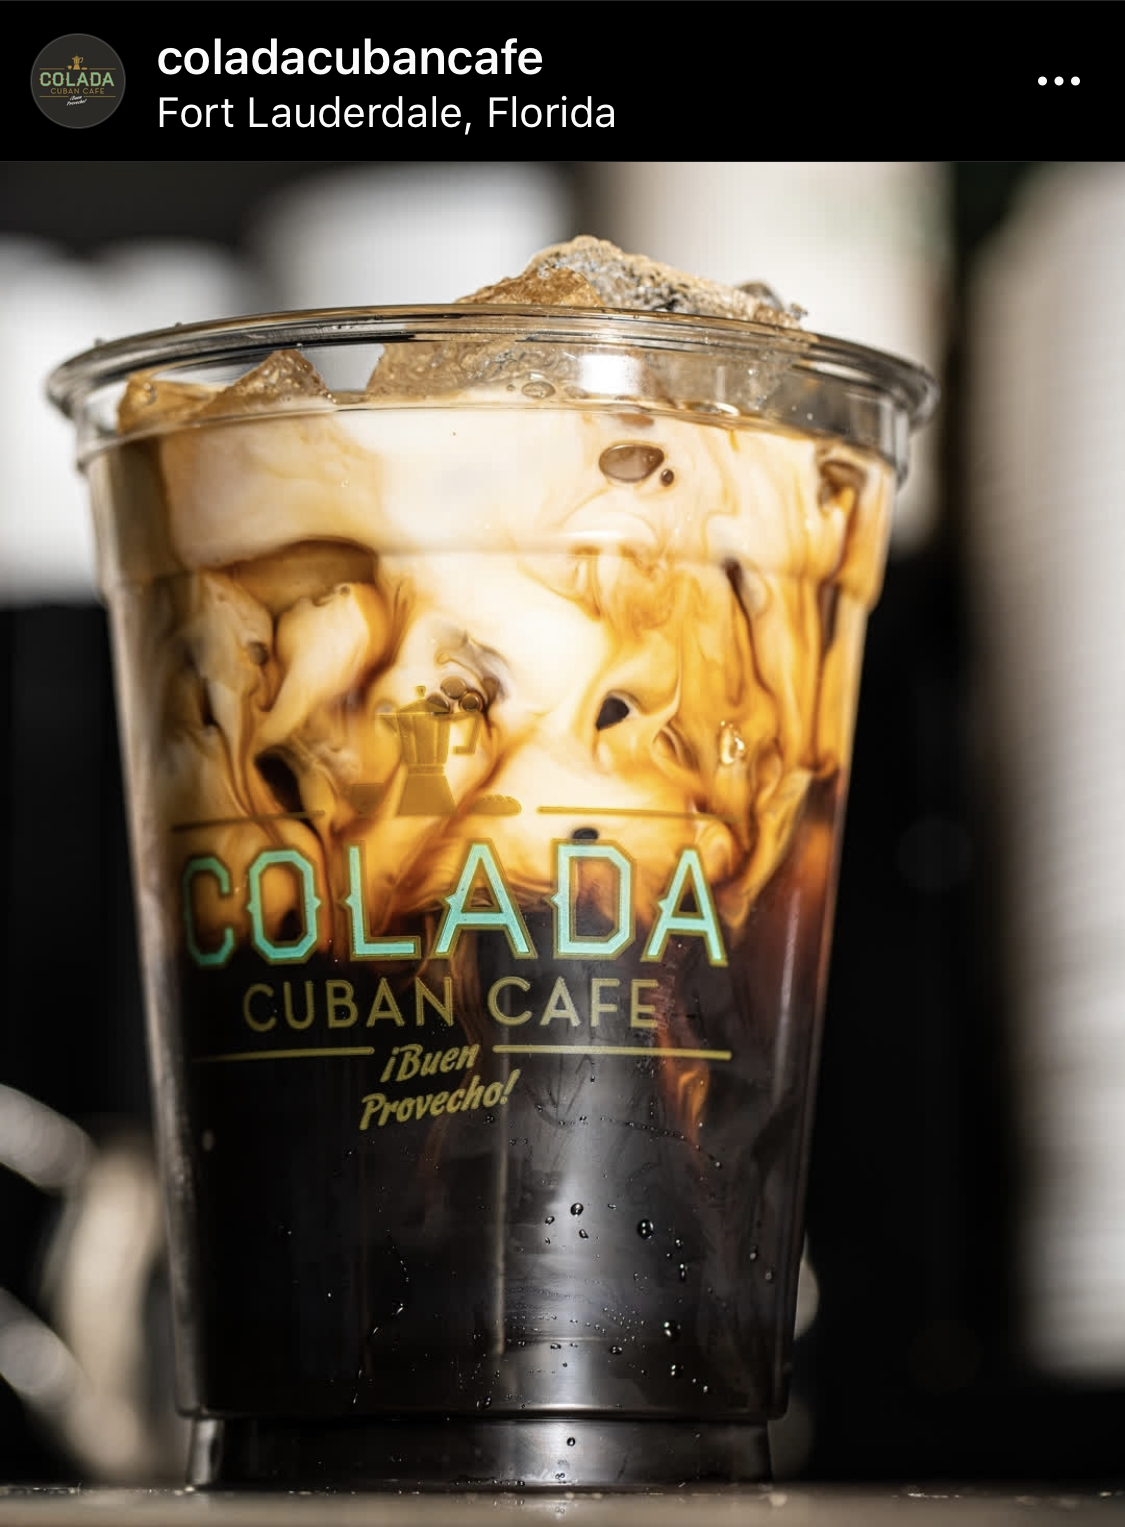 Colada Cuban Cafe in Fort Lauderdale